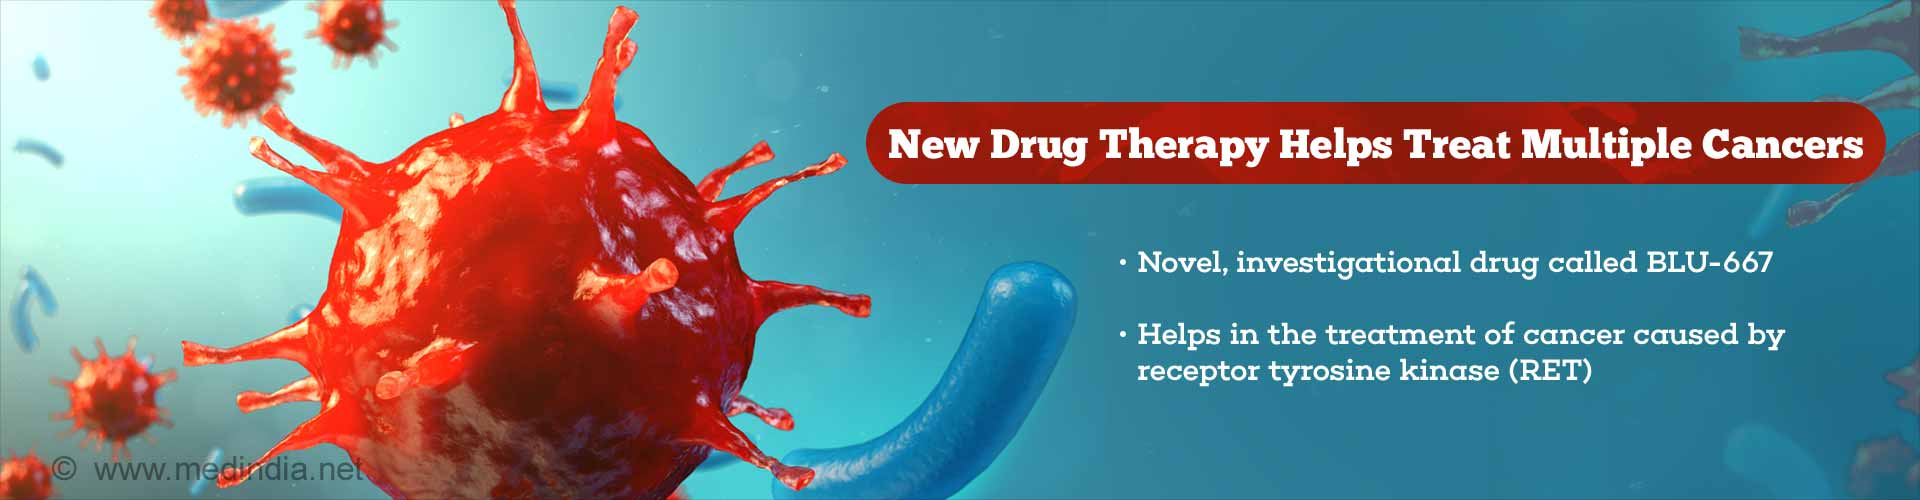 New Drug Therapy Shows Promise to Treat Multiple Cancers